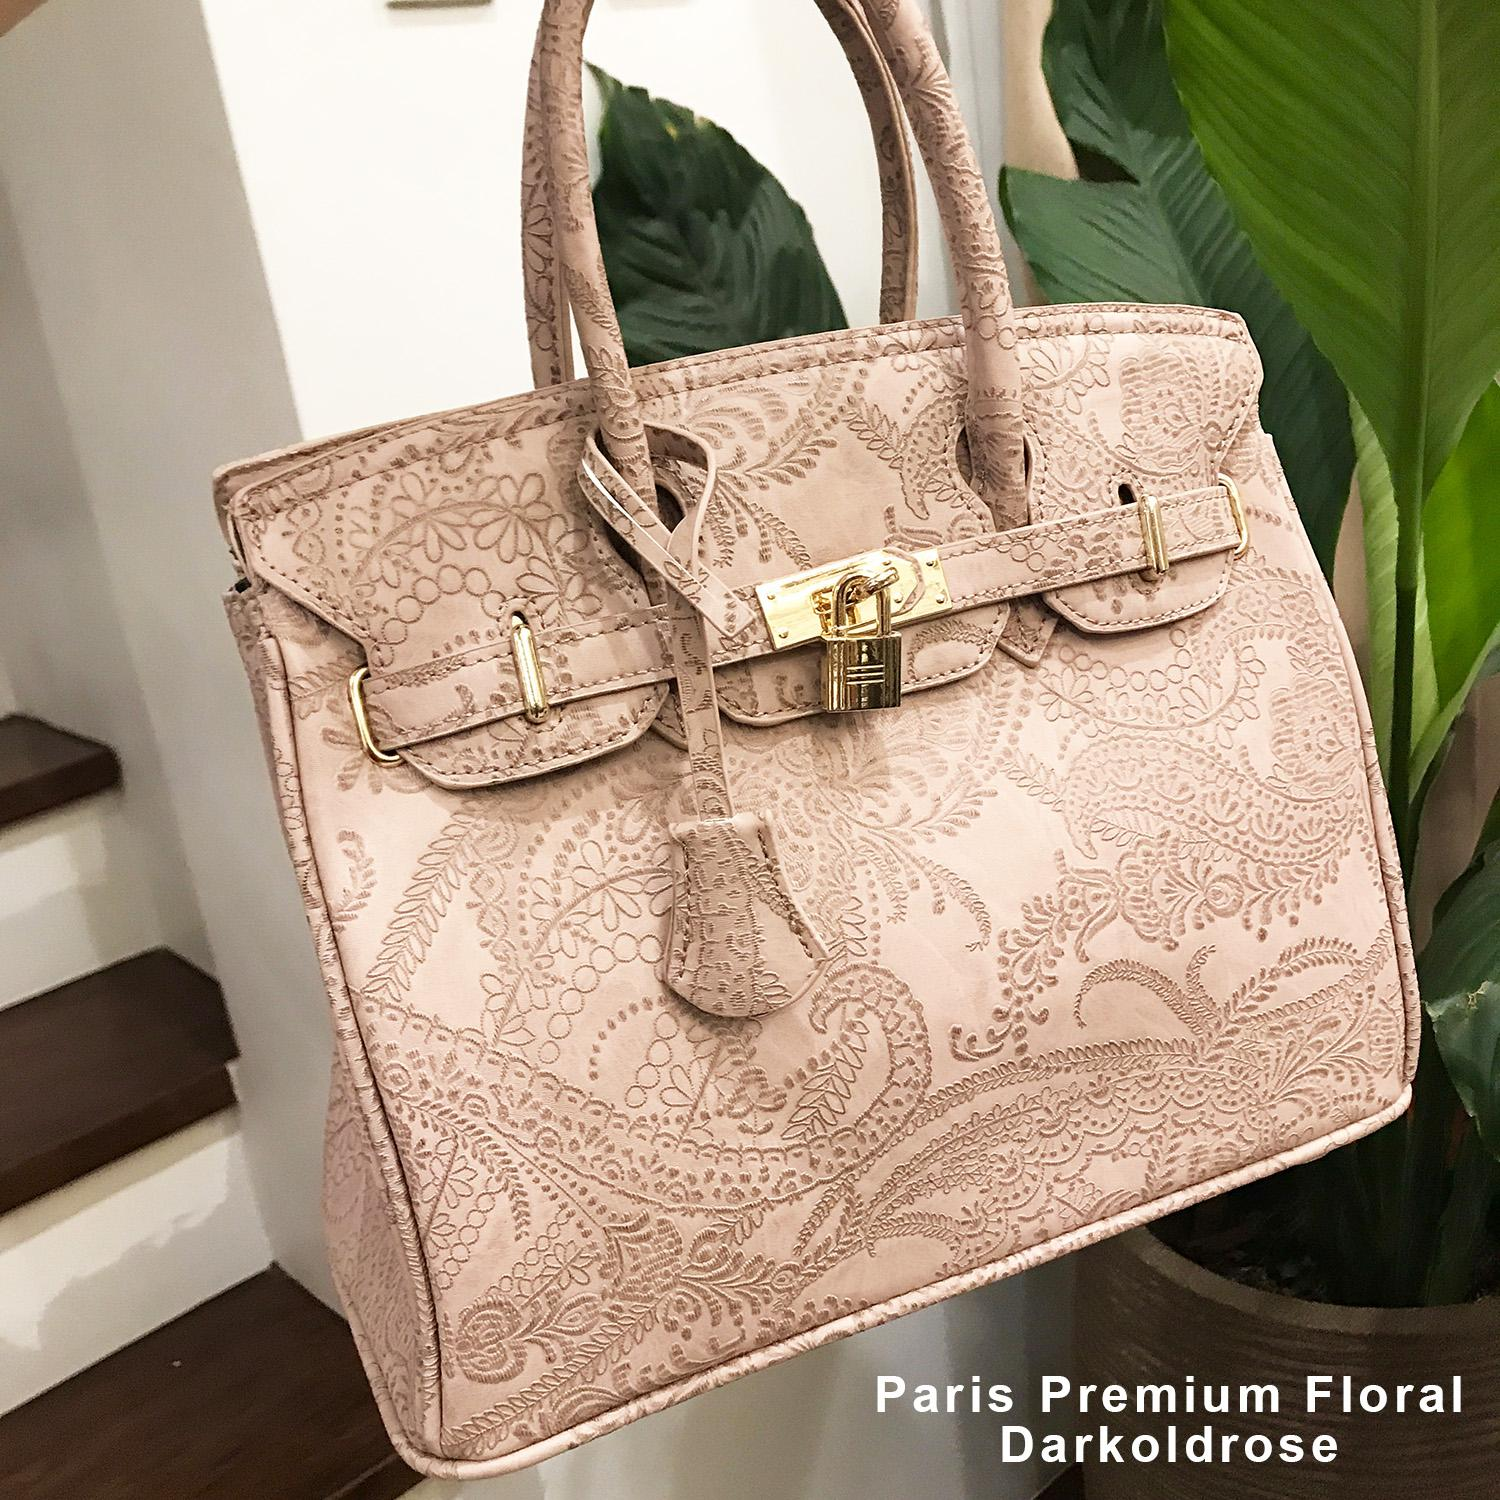 f134db4480 Bags on Demand Philippines  Bags on Demand price list - Women s Wallets    Bags for sale